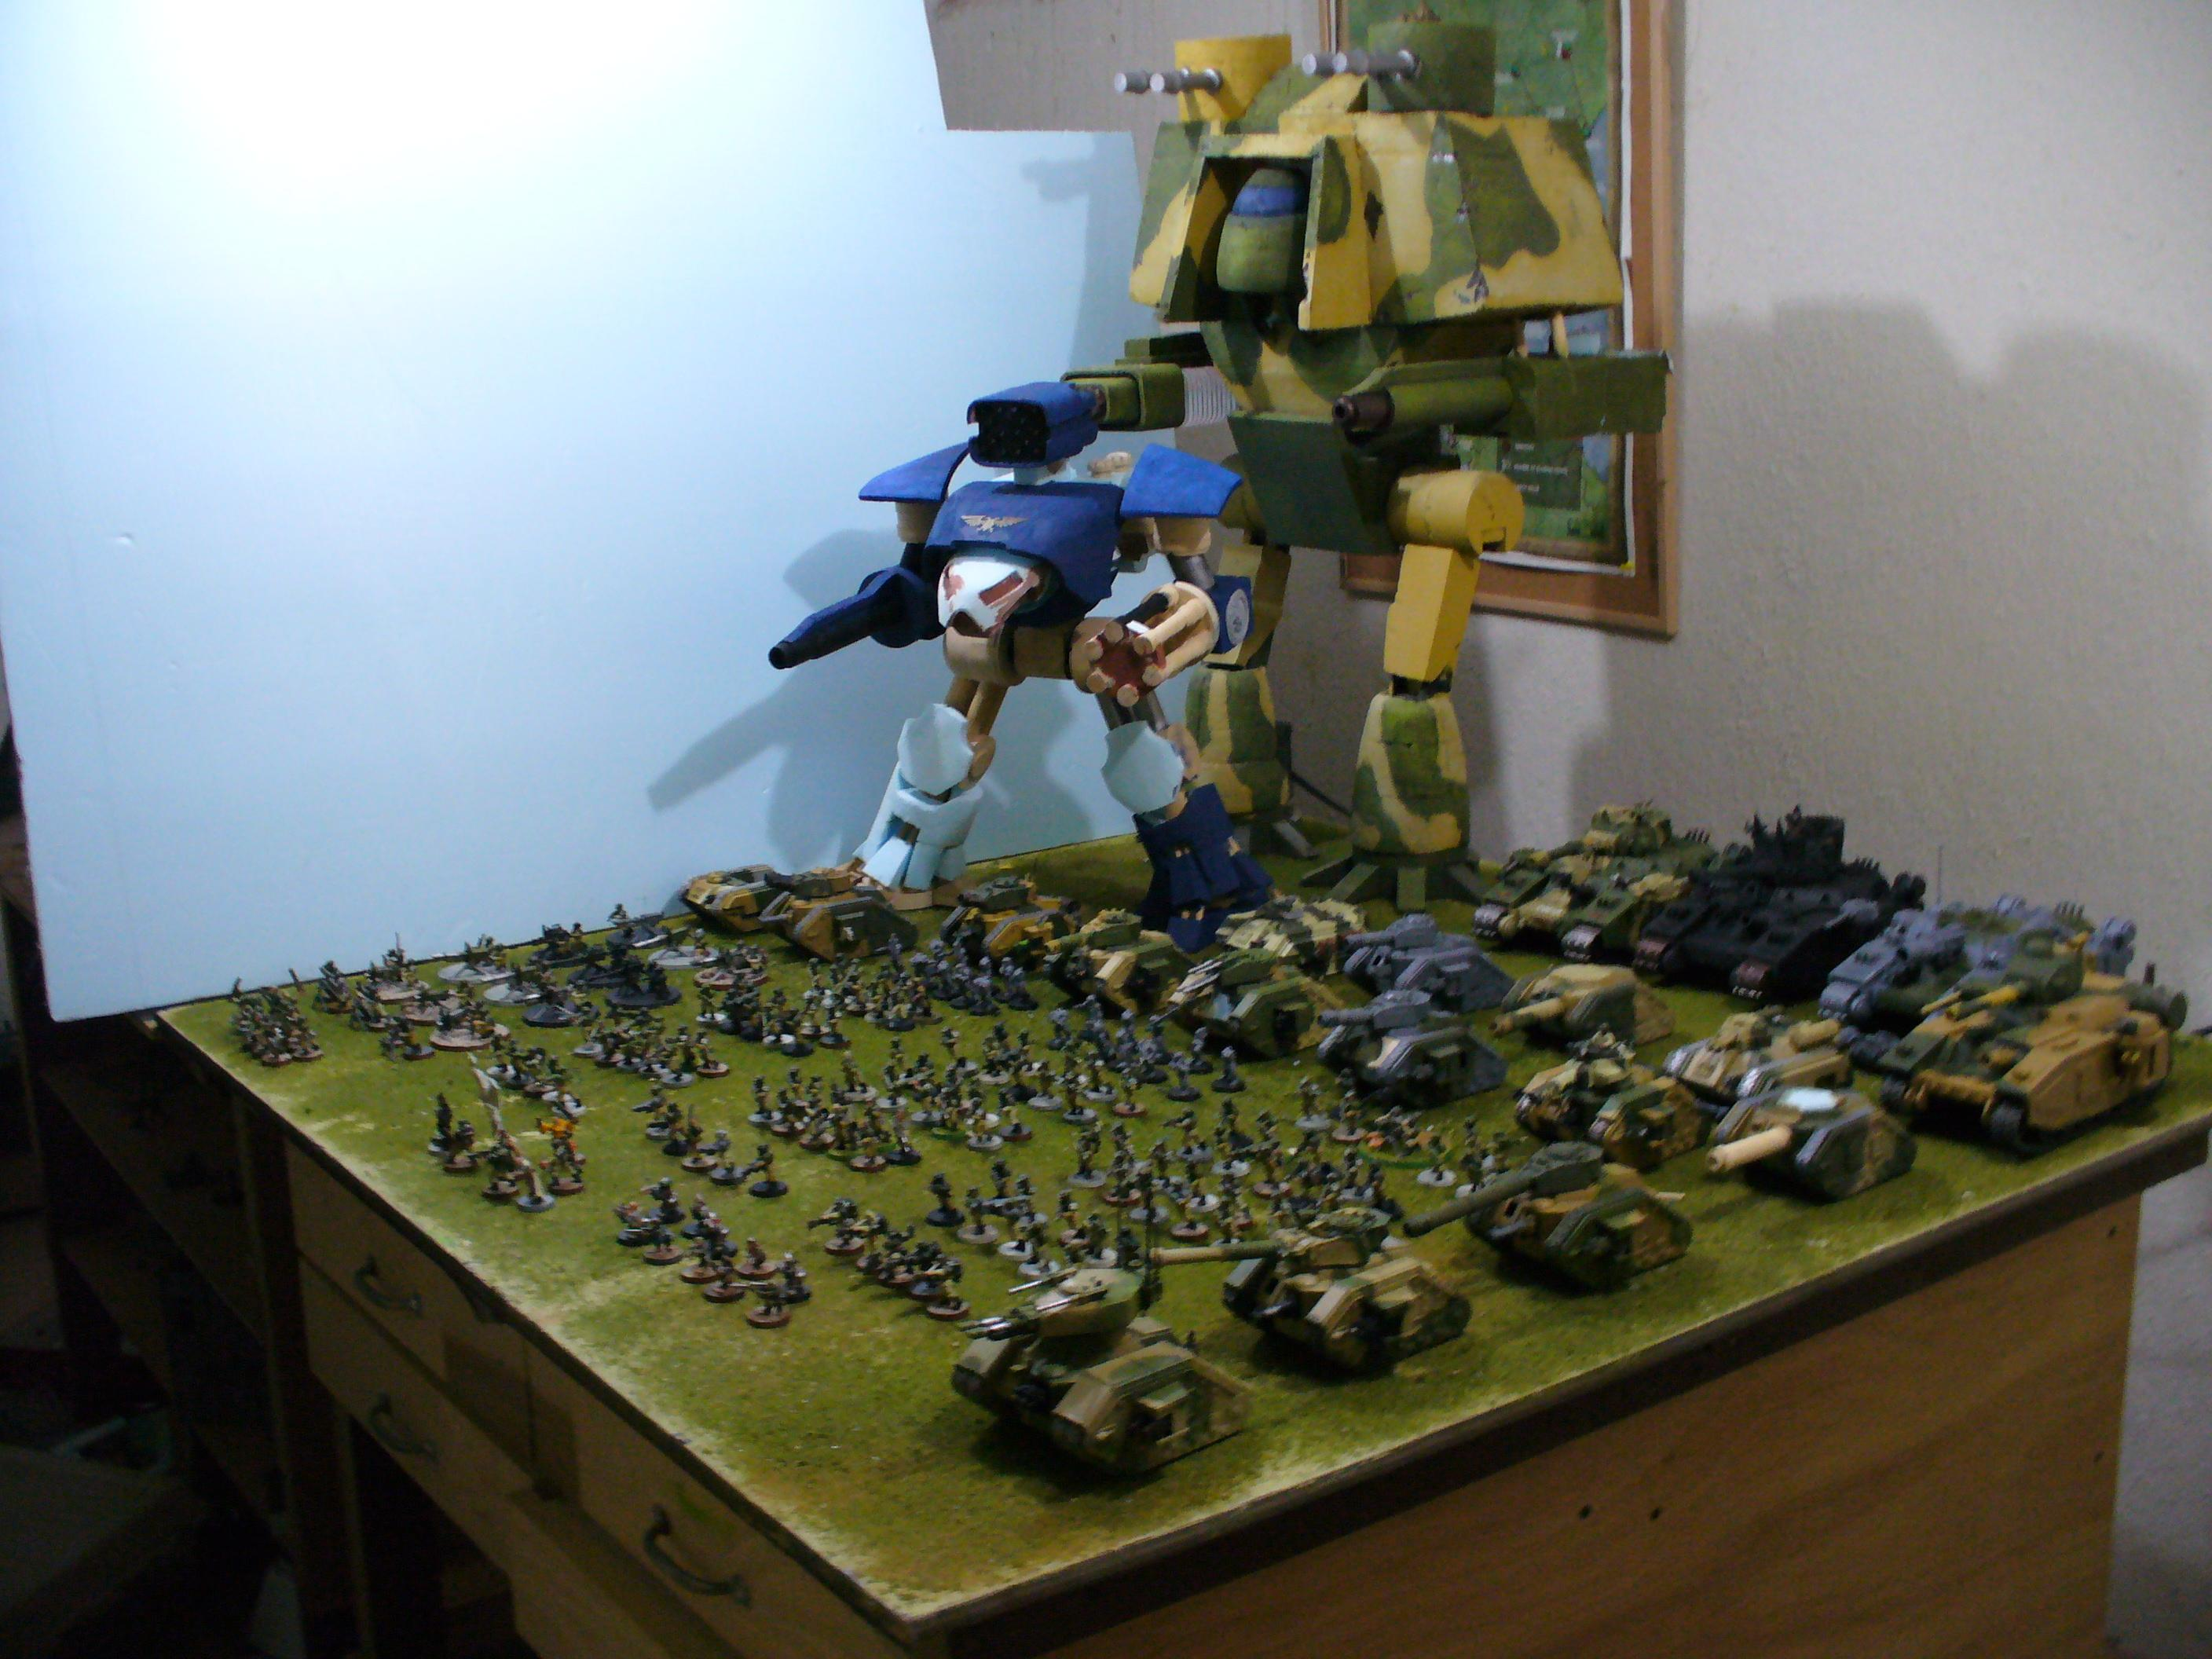 Armored Company, Army, Imperial Guard, Reaver, Titan, Warlord